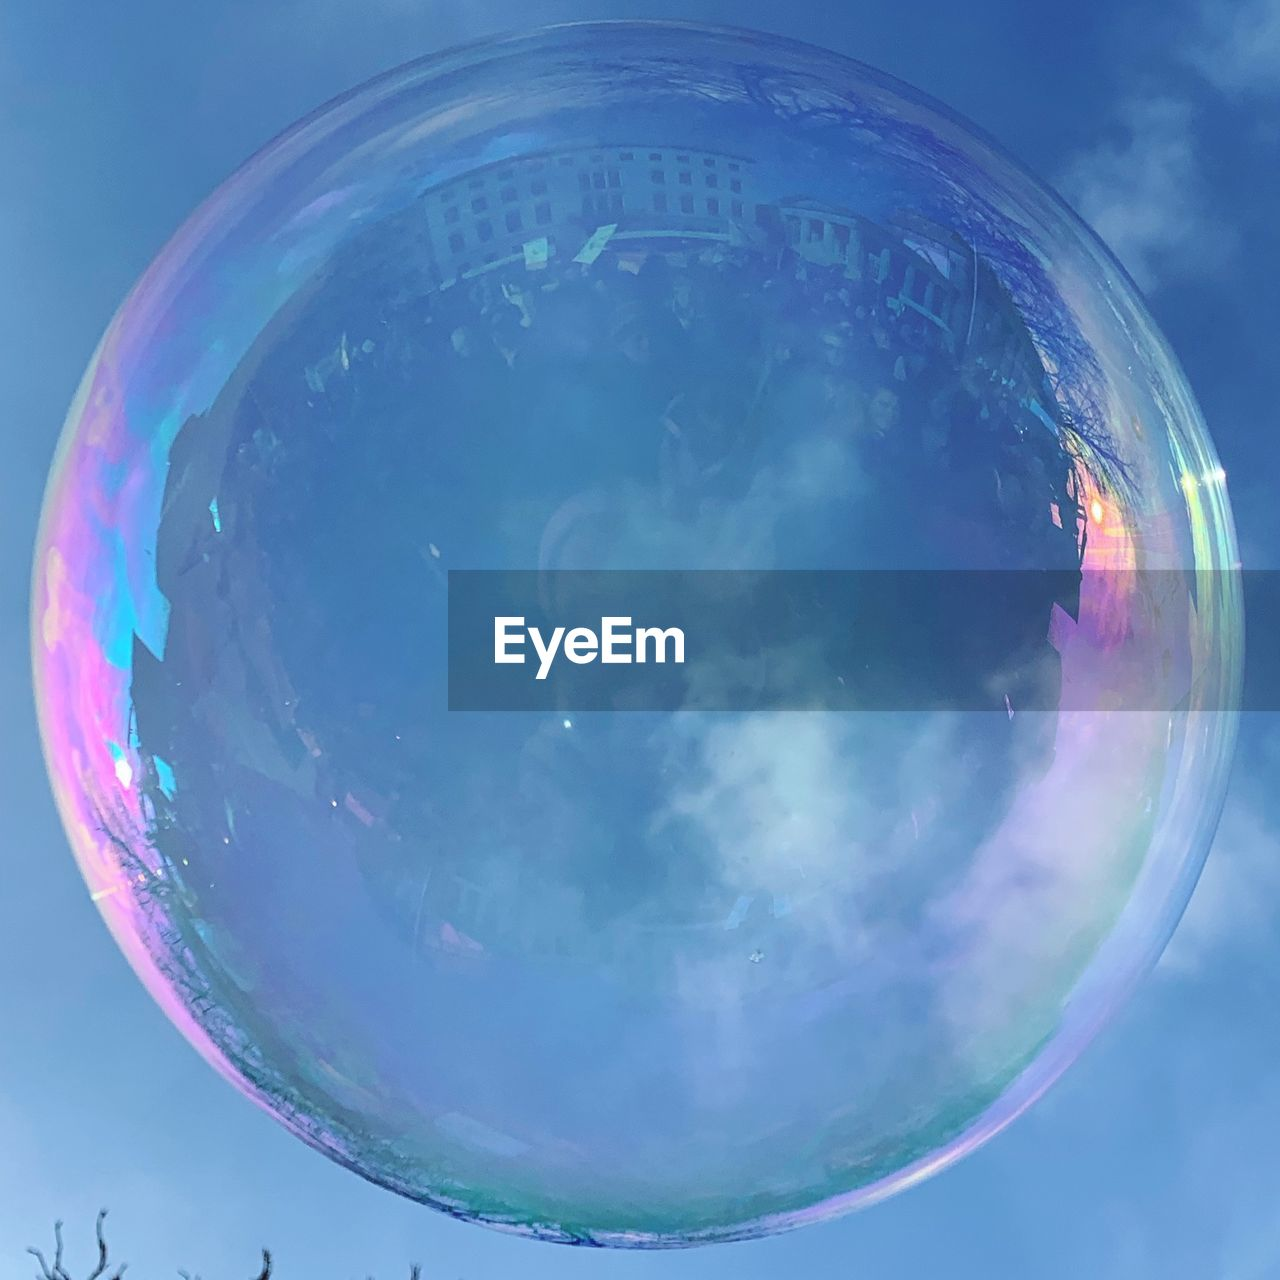 bubble, transparent, sphere, no people, nature, vulnerability, close-up, geometric shape, fragility, reflection, shape, sky, glass - material, day, blue, soap sud, circle, outdoors, mid-air, low angle view